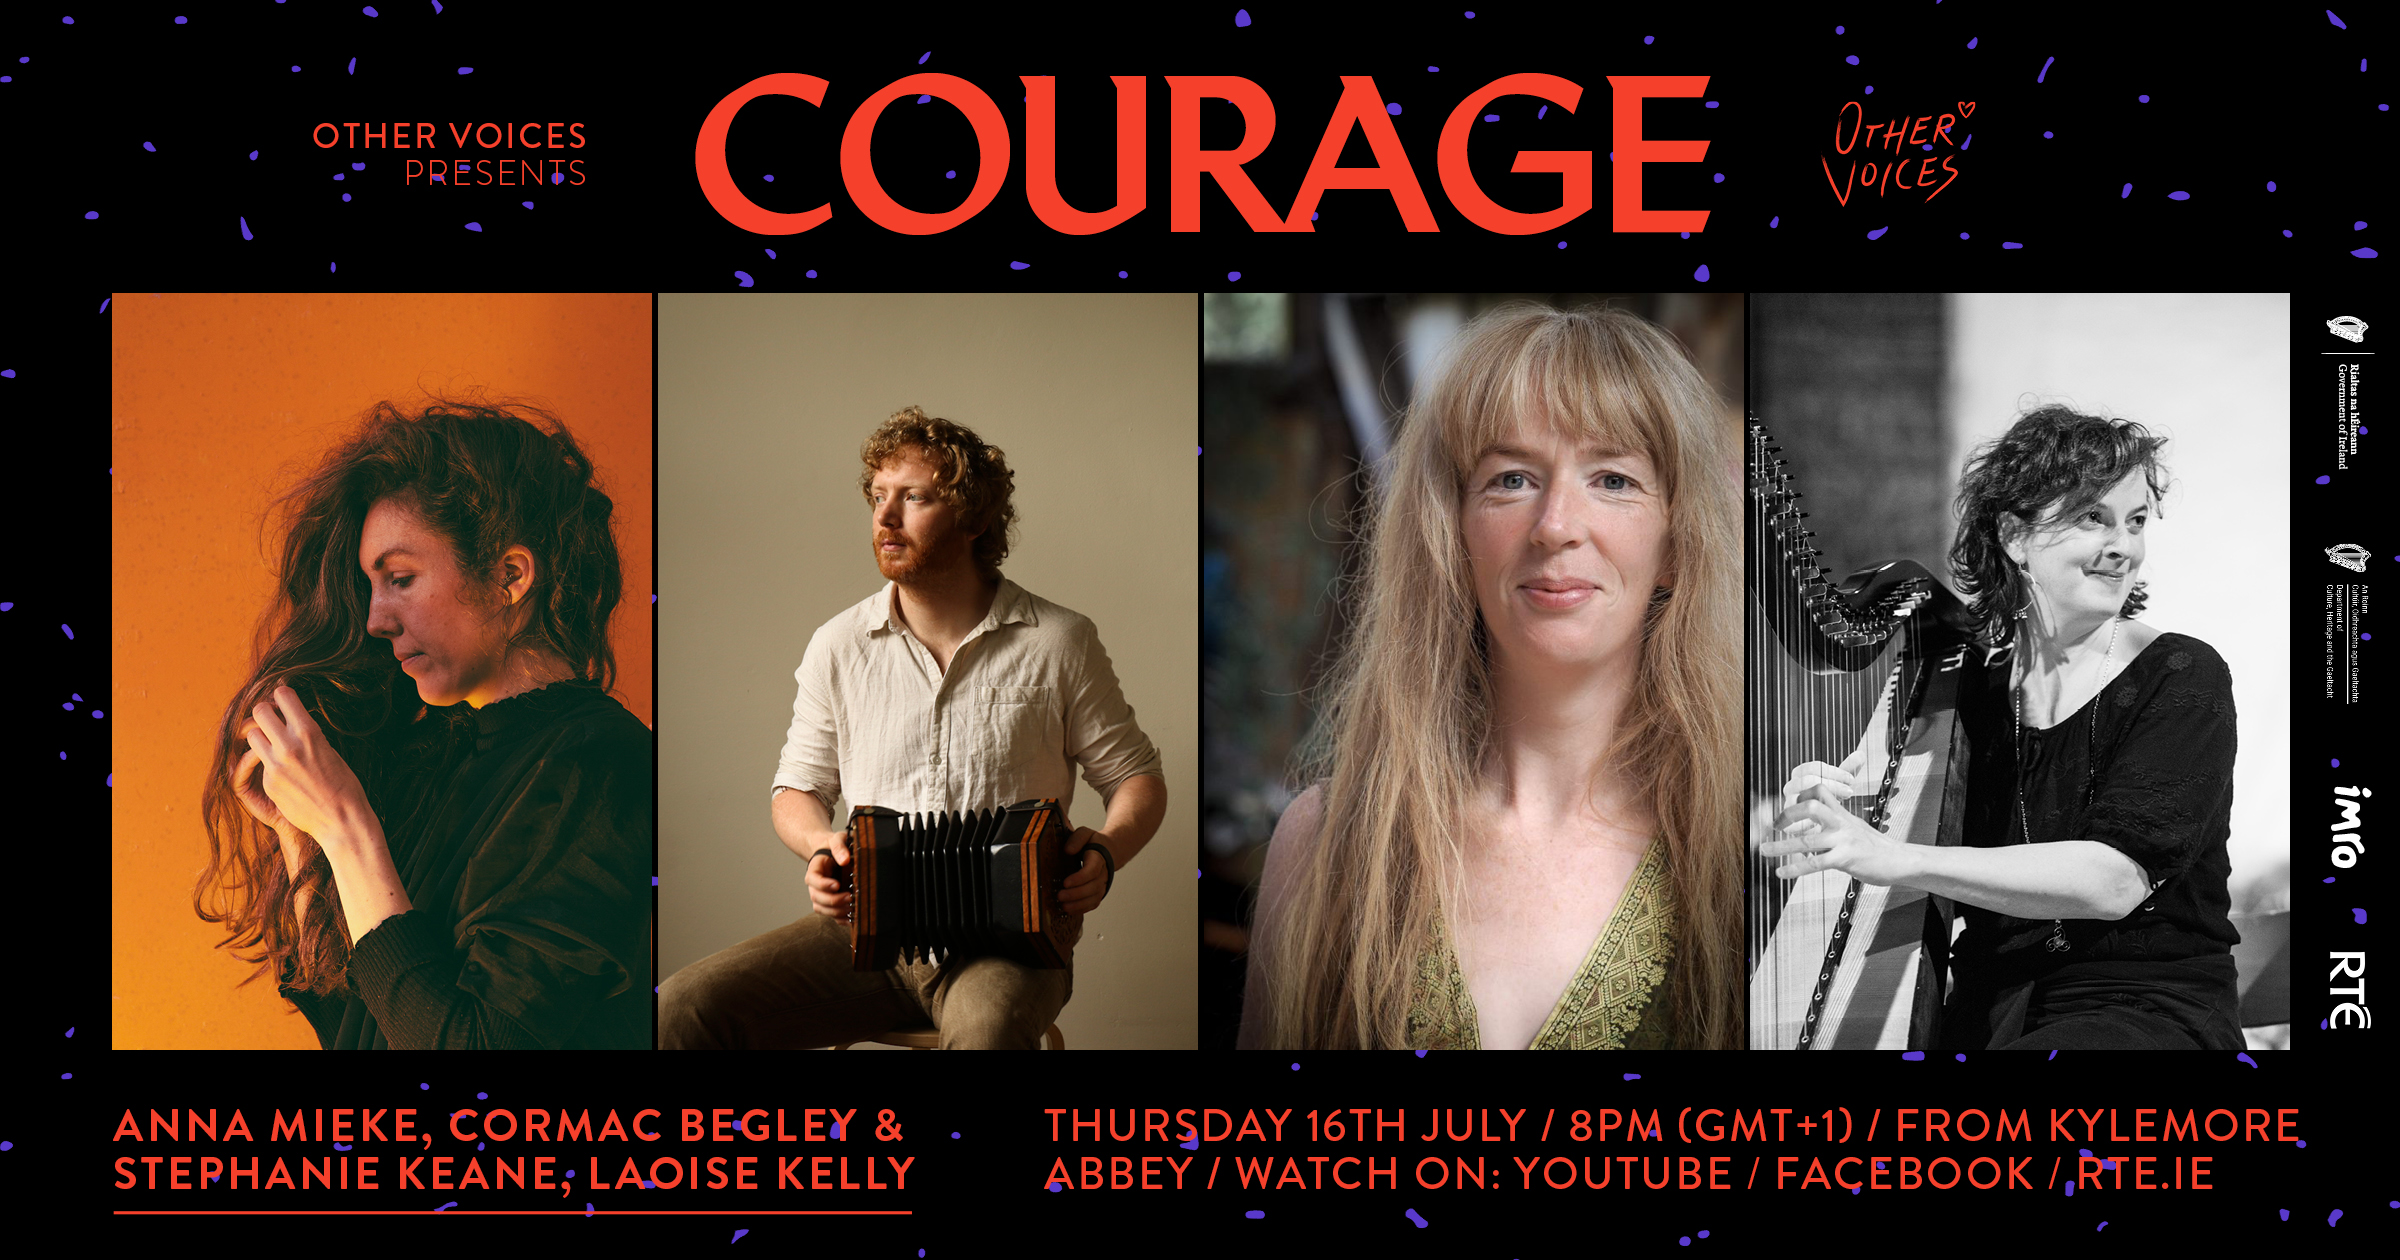 Cormac Begley, Laoise Kelly and Anna Mieke Announced for Courage